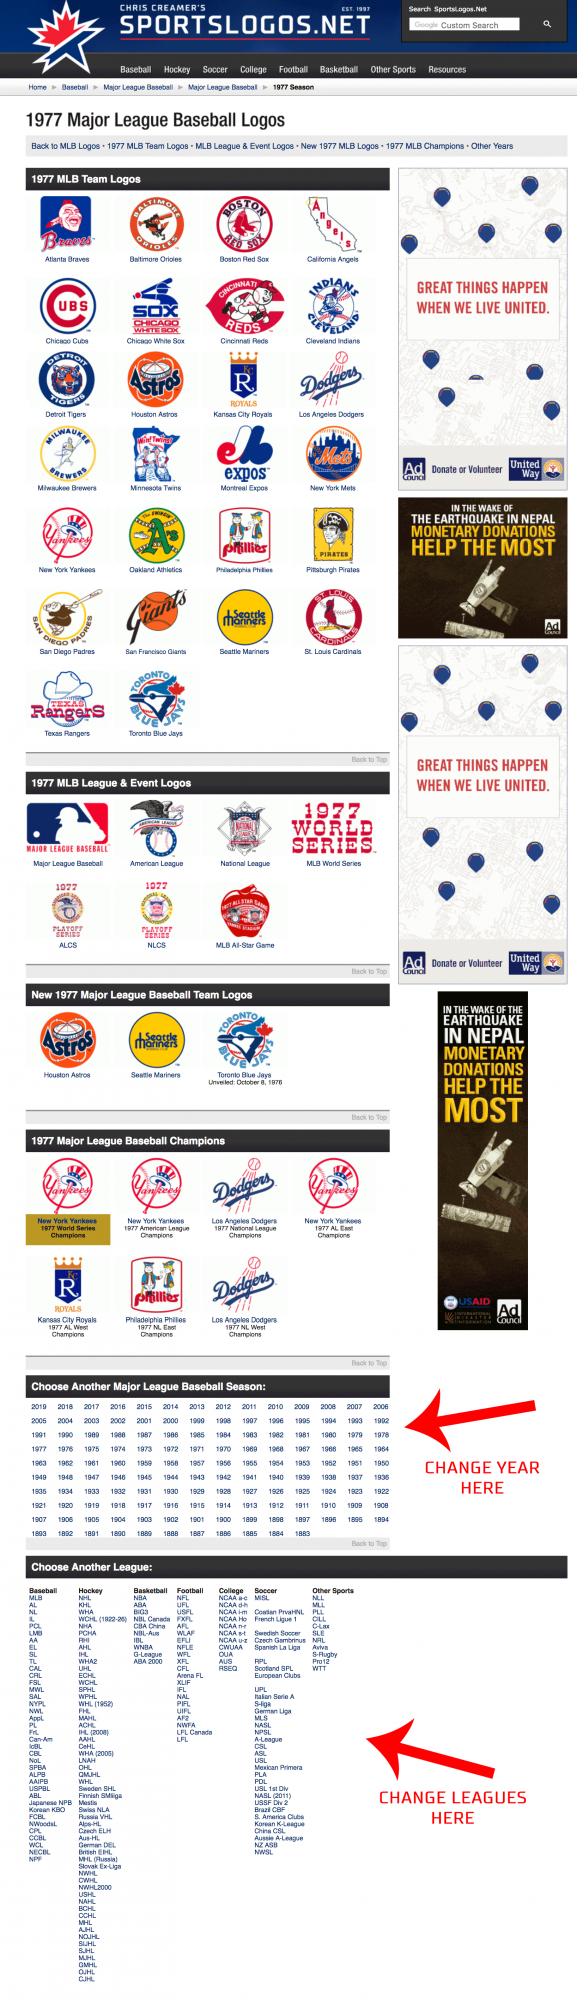 New Section Now Available: See All Logos For Any Year